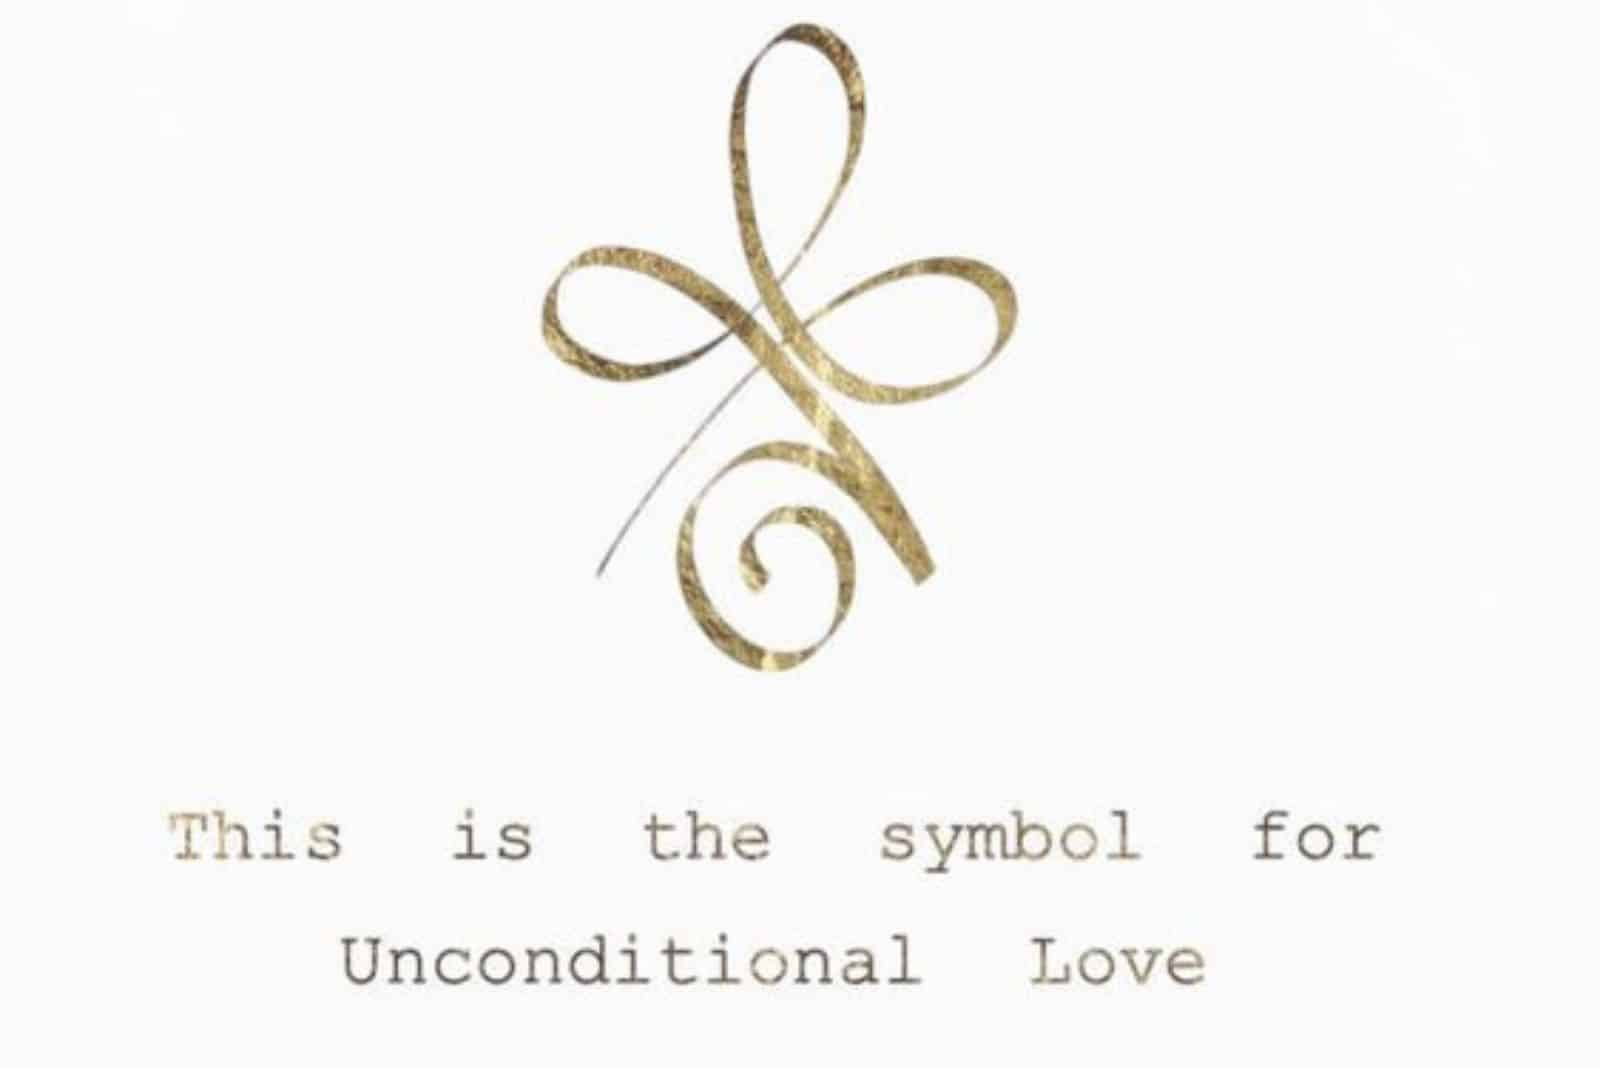 a symbol of unconditional love